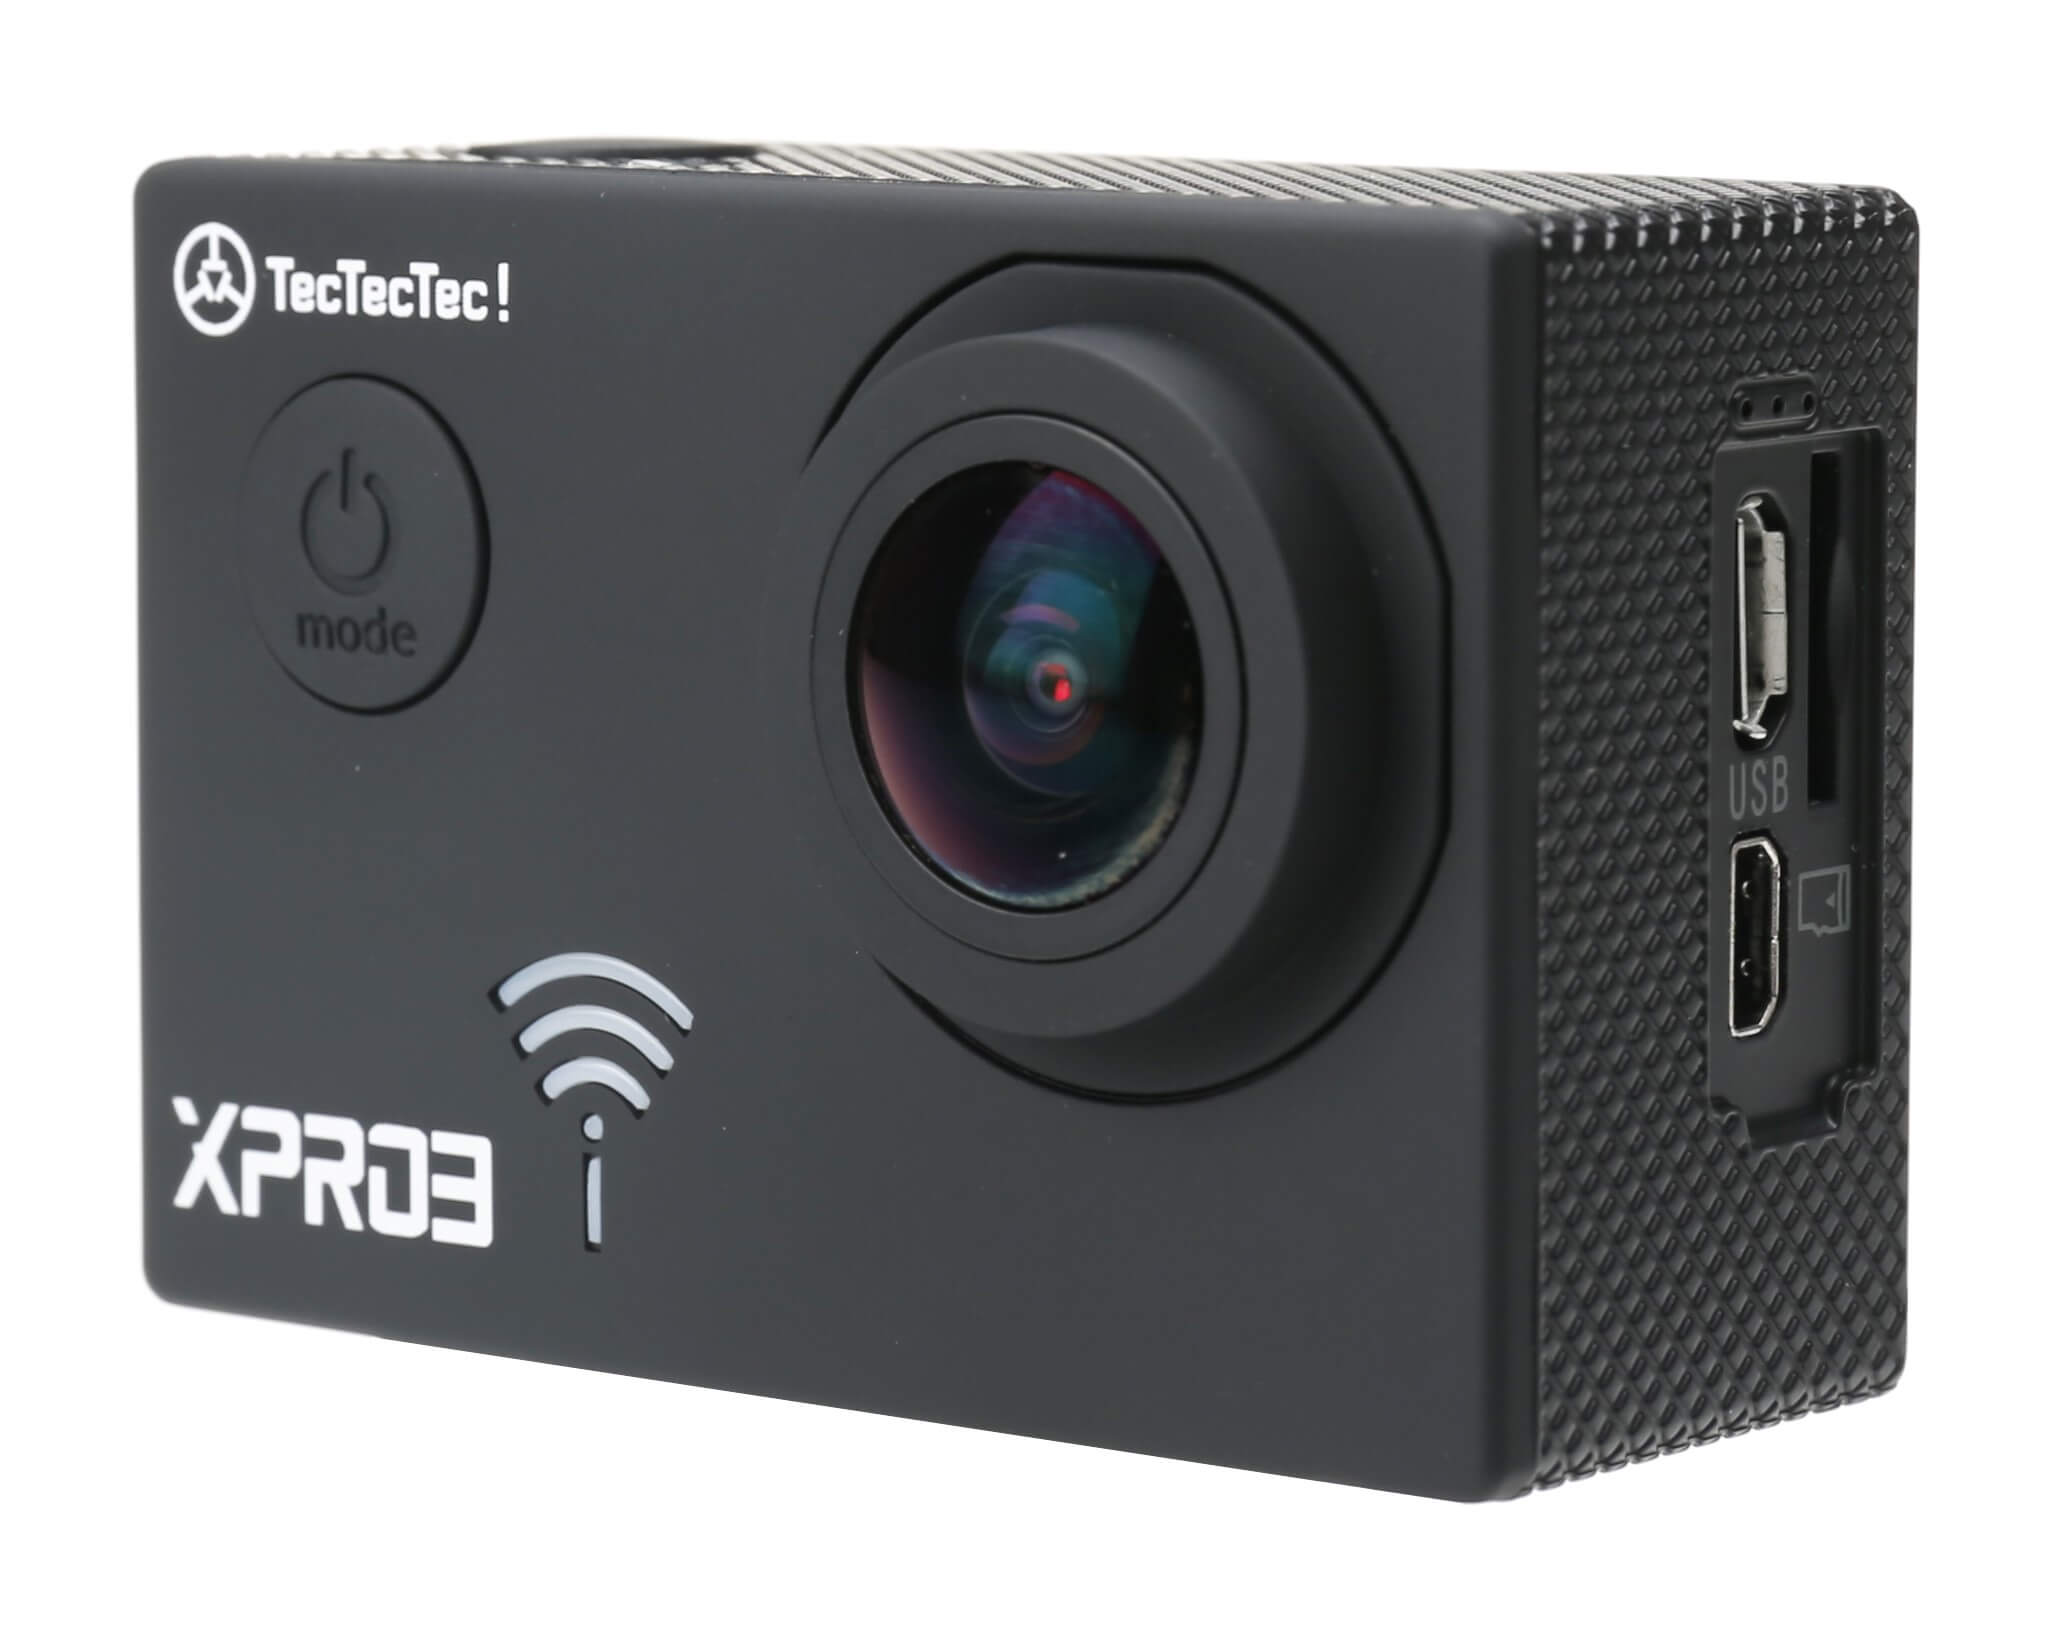 Xpro3 Action Camera Tectectec X Pro 6s 4k 12 Mp